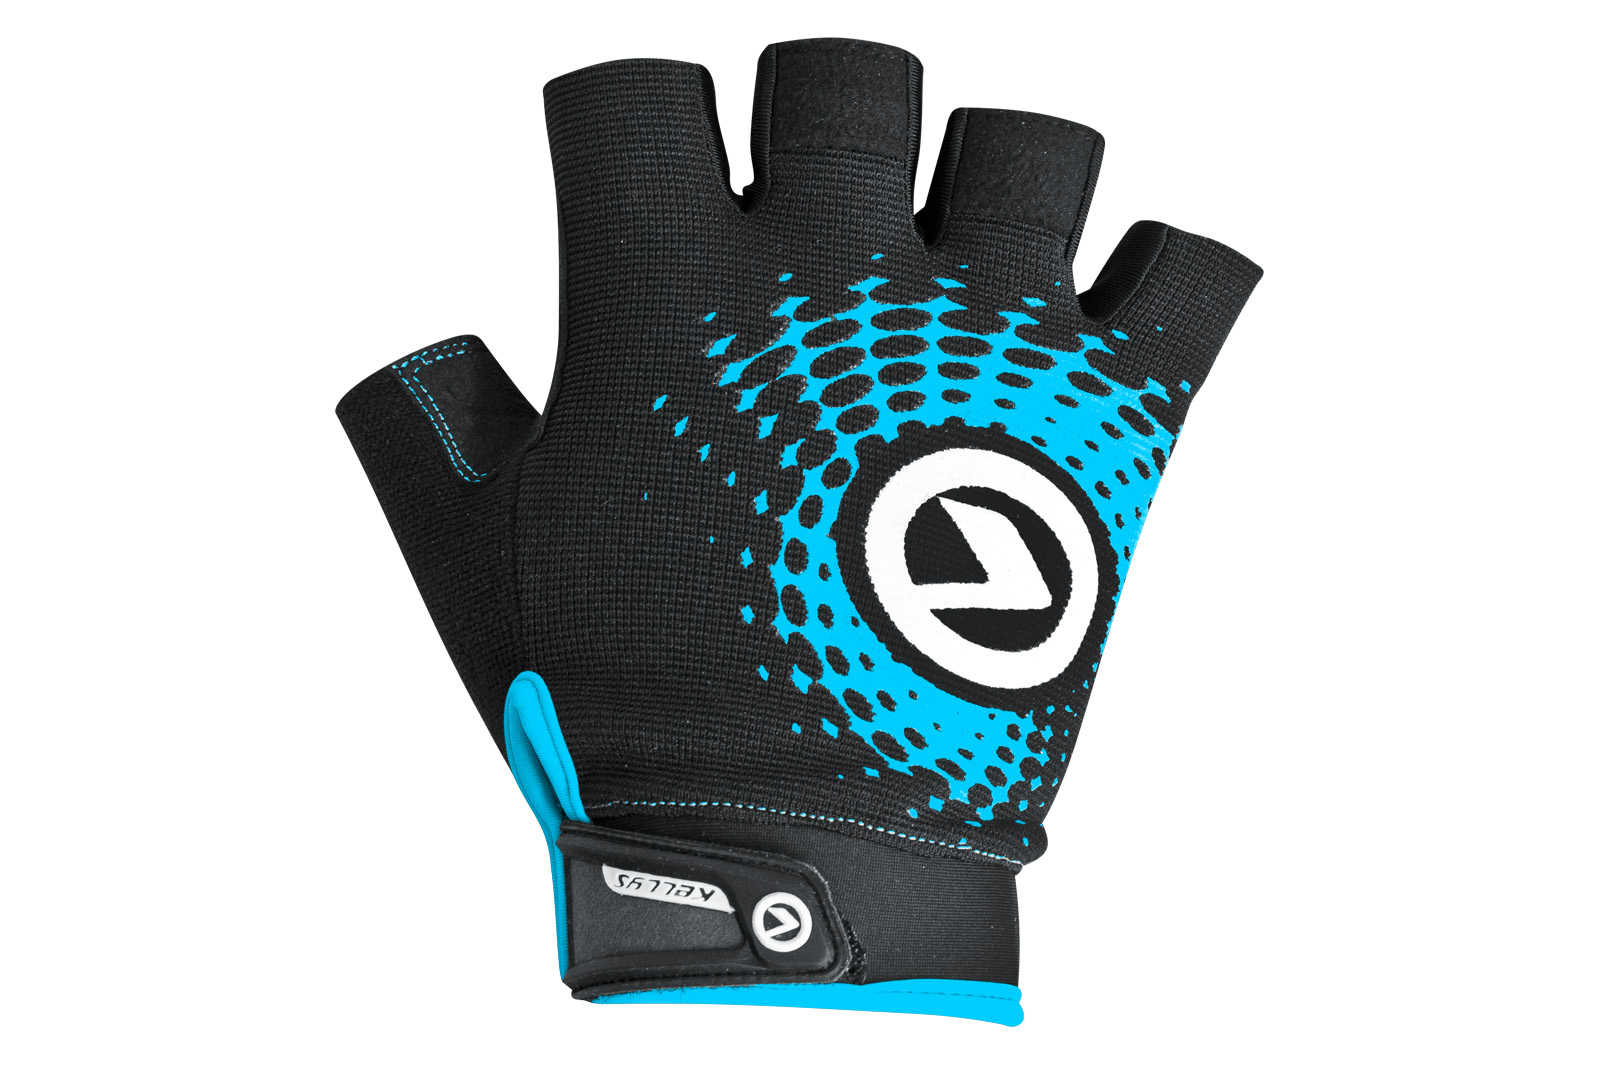 Handschuhe IMPACT short black-blue S - Handschuhe IMPACT short black-blue S